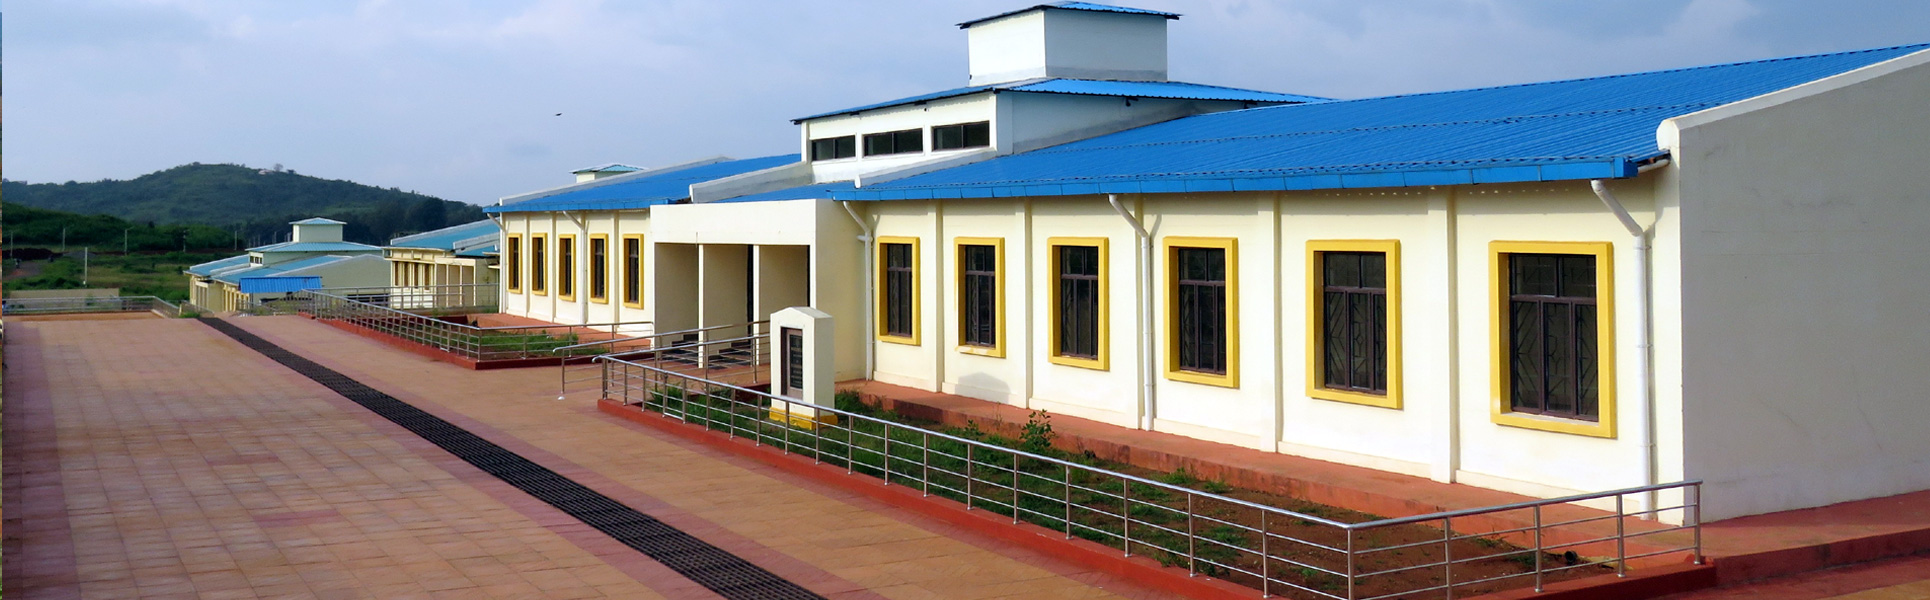 Central University of Orissa, Academic Block